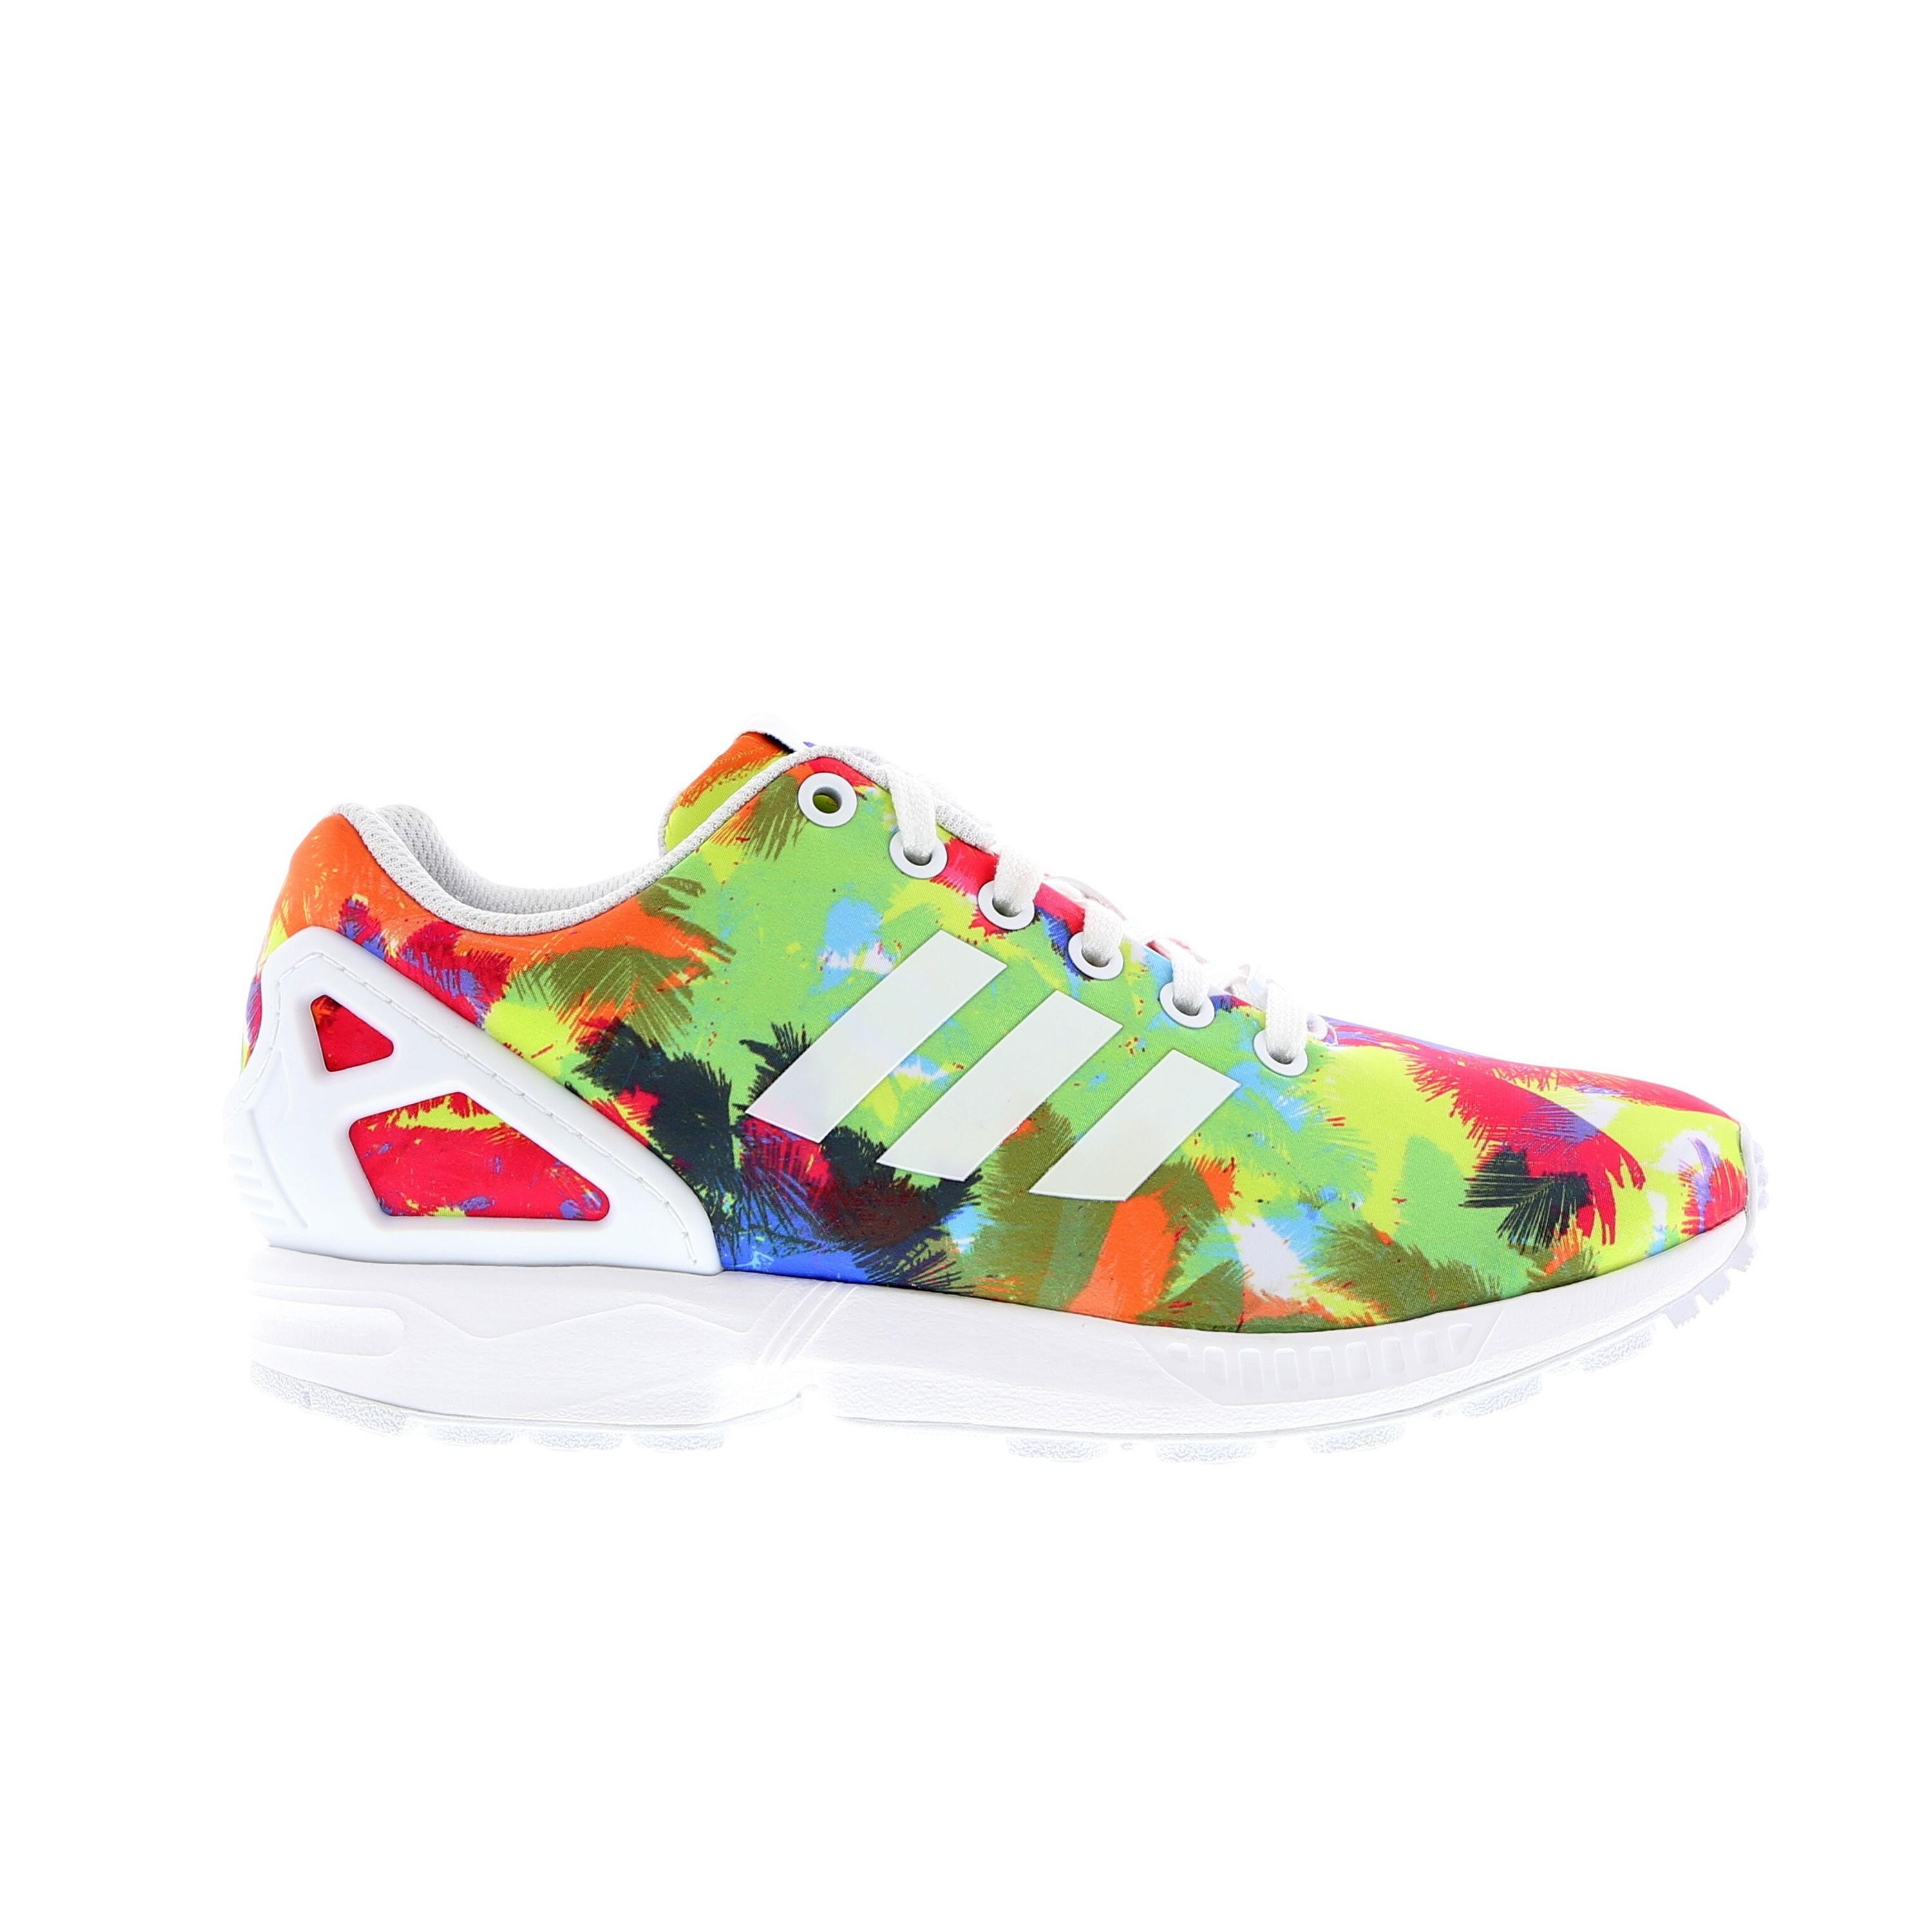 Femme Adidas ZX Flux Palm Trees Colour Splash Print Sneakers Blanche/Multi/Blanc S82823